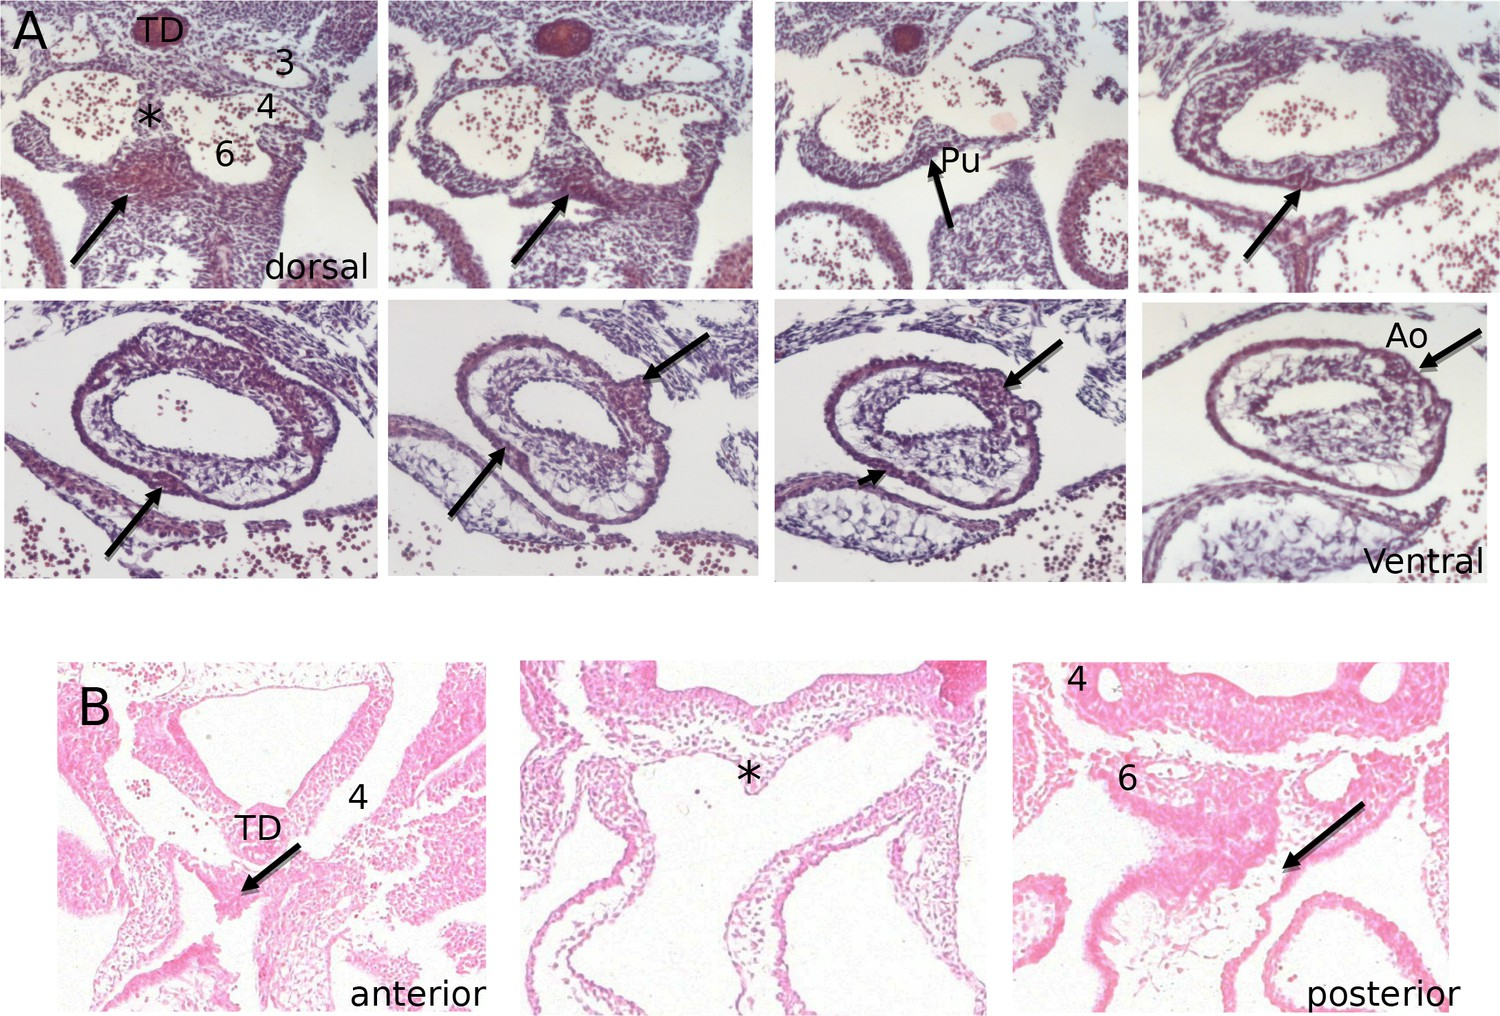 A Novel Source Of Arterial Valve Cells Linked To Bicuspid Aortic 2001 Jaguar Type X 25 Power Distribution Fuse Box Diagram Histological Appearance The Ic As They First Form